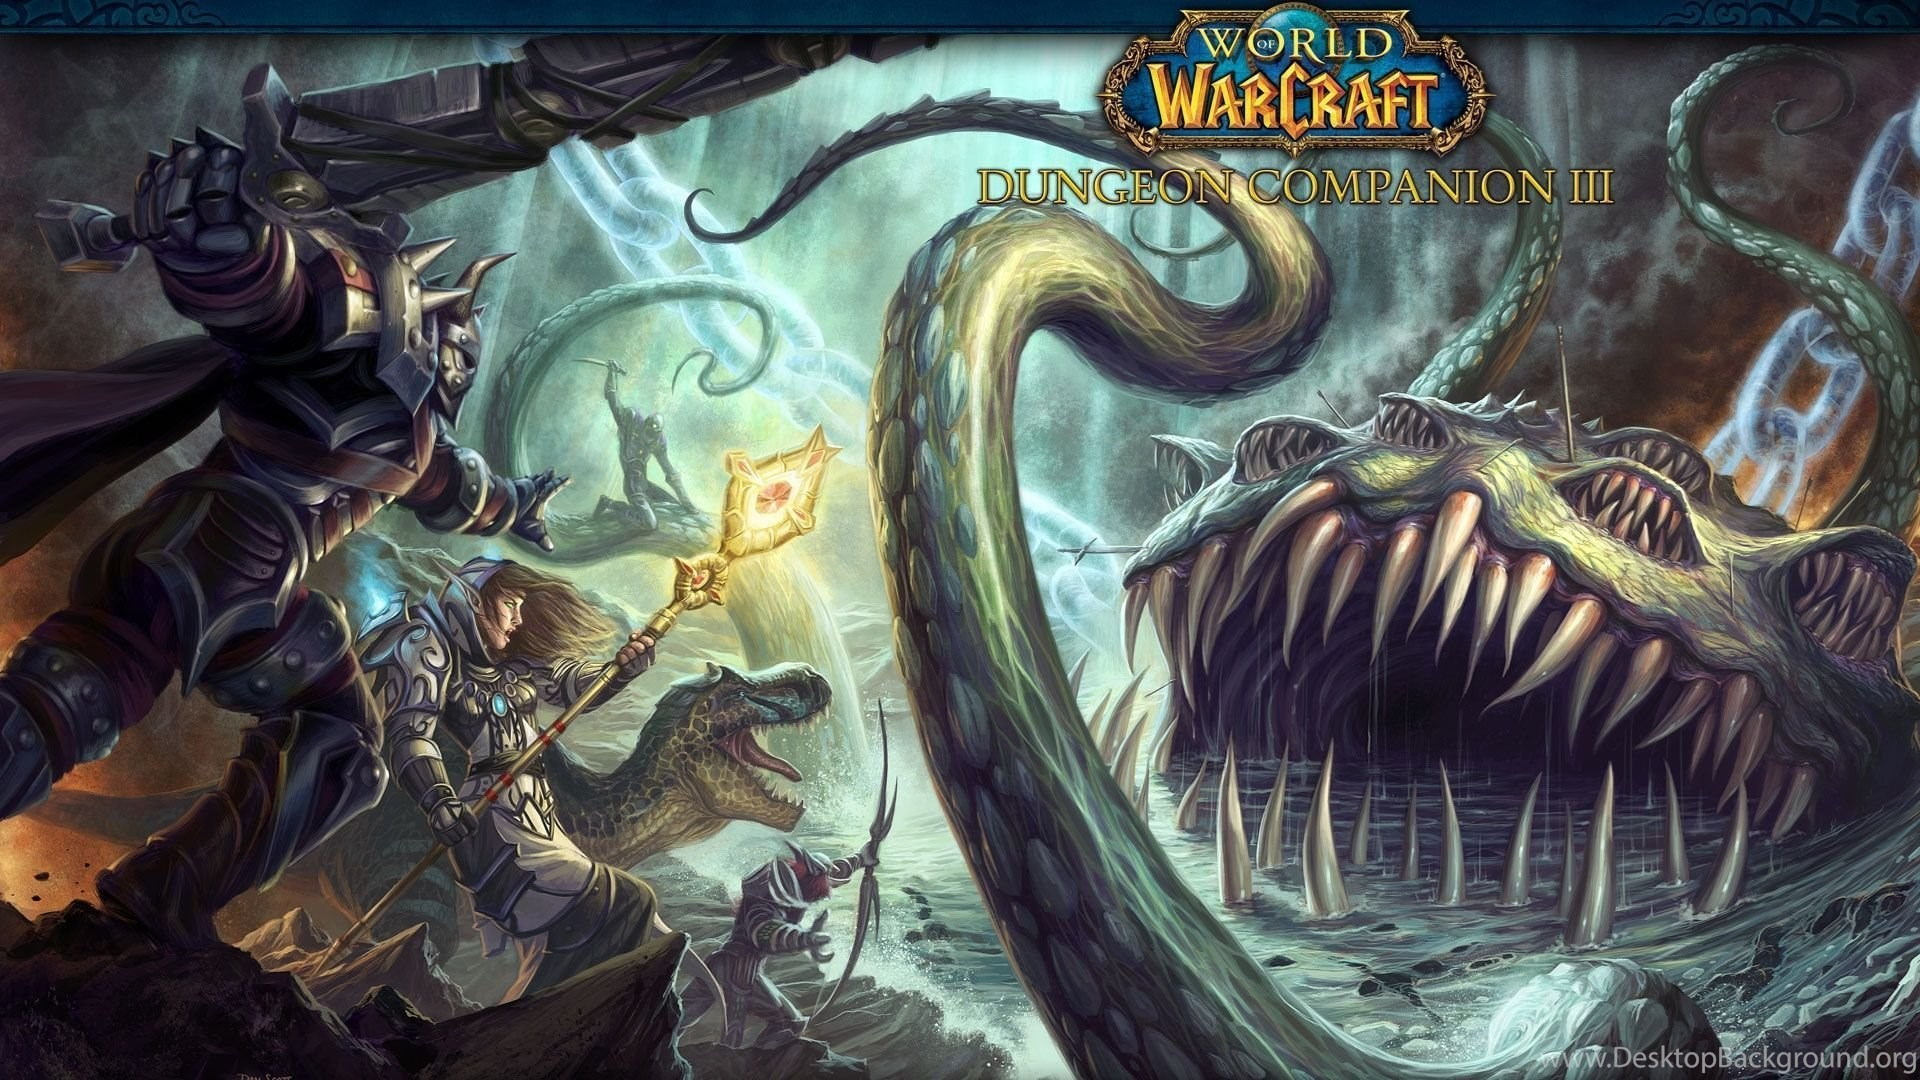 Download Wallpapers 1920x1080 World Of Warcraft Dungeon Copanion 3